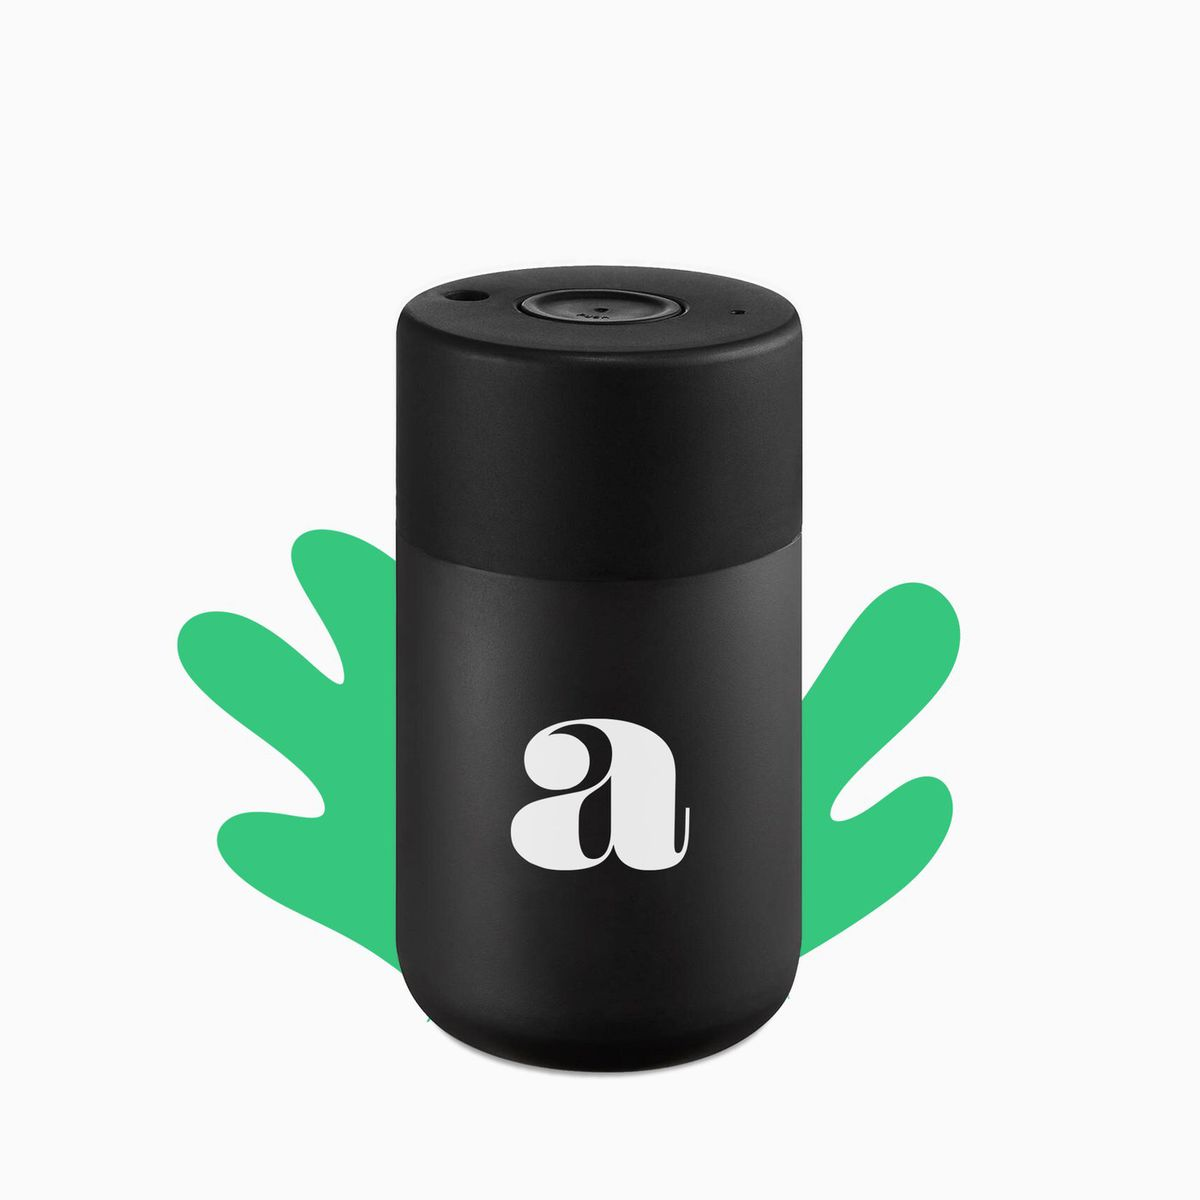 This reusable coffee cup from Attendant is some of the best restaurant merch to buy in London